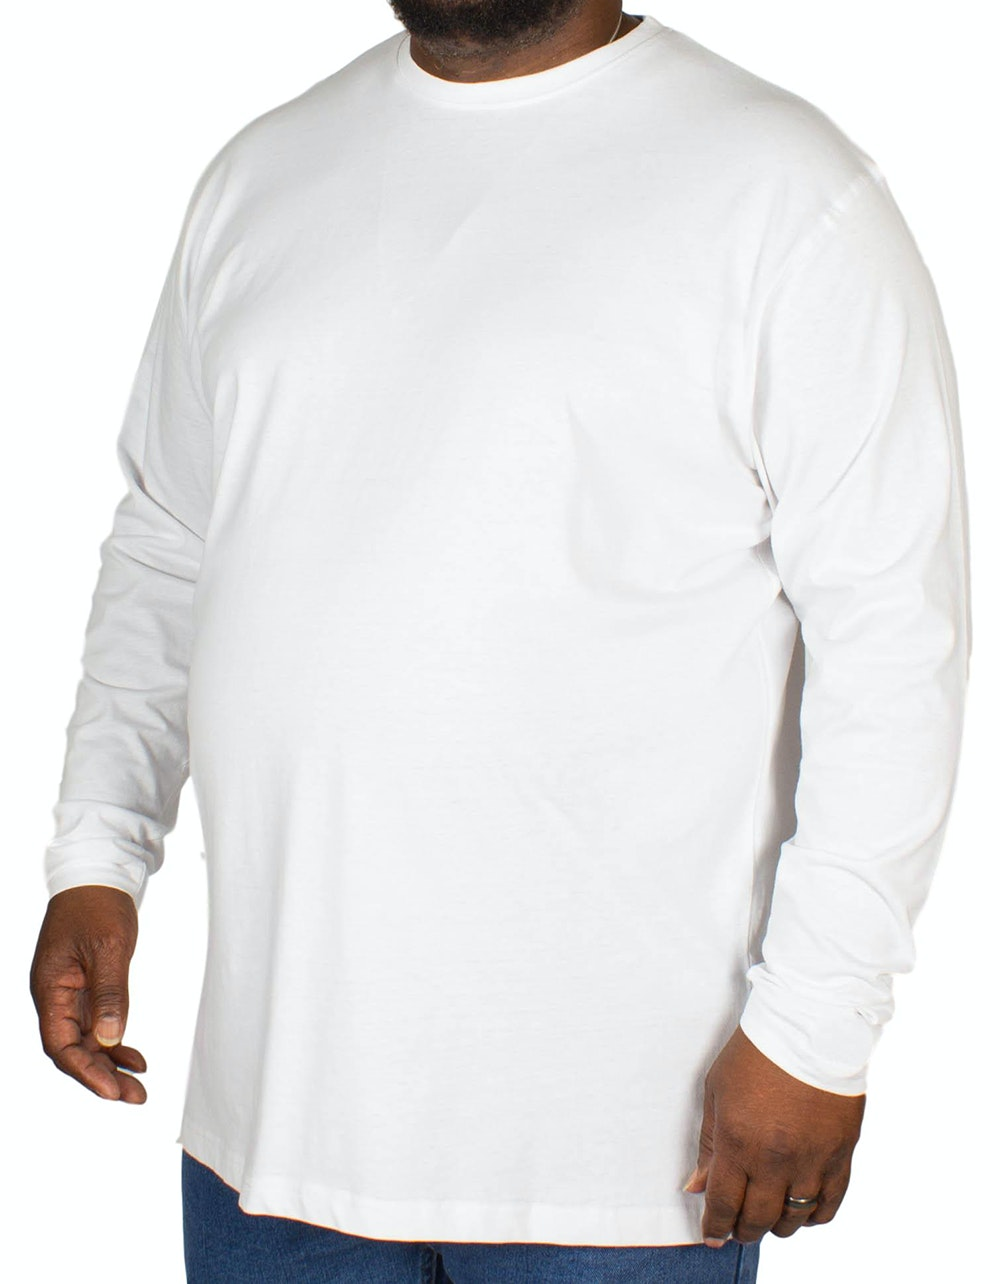 Espionage Plain Long Sleeve T-shirt White